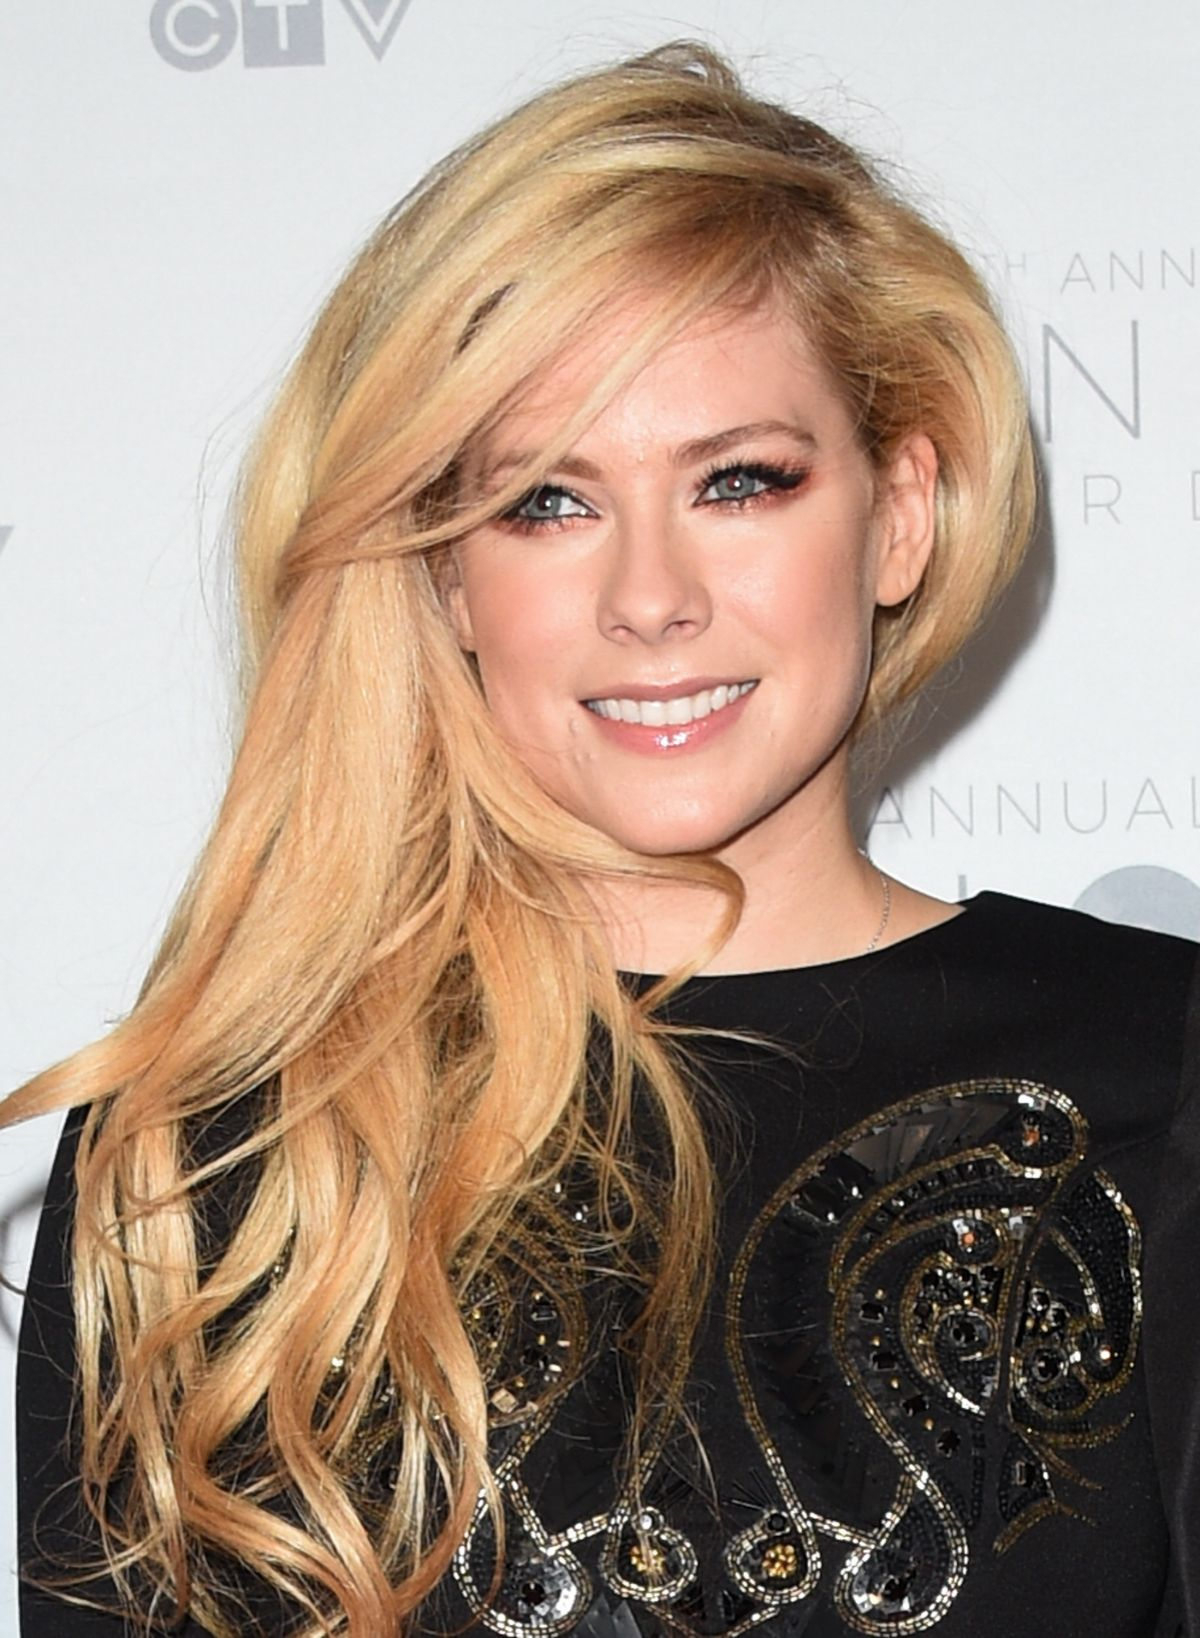 avril lavigne at juno awards in calgary 04032016